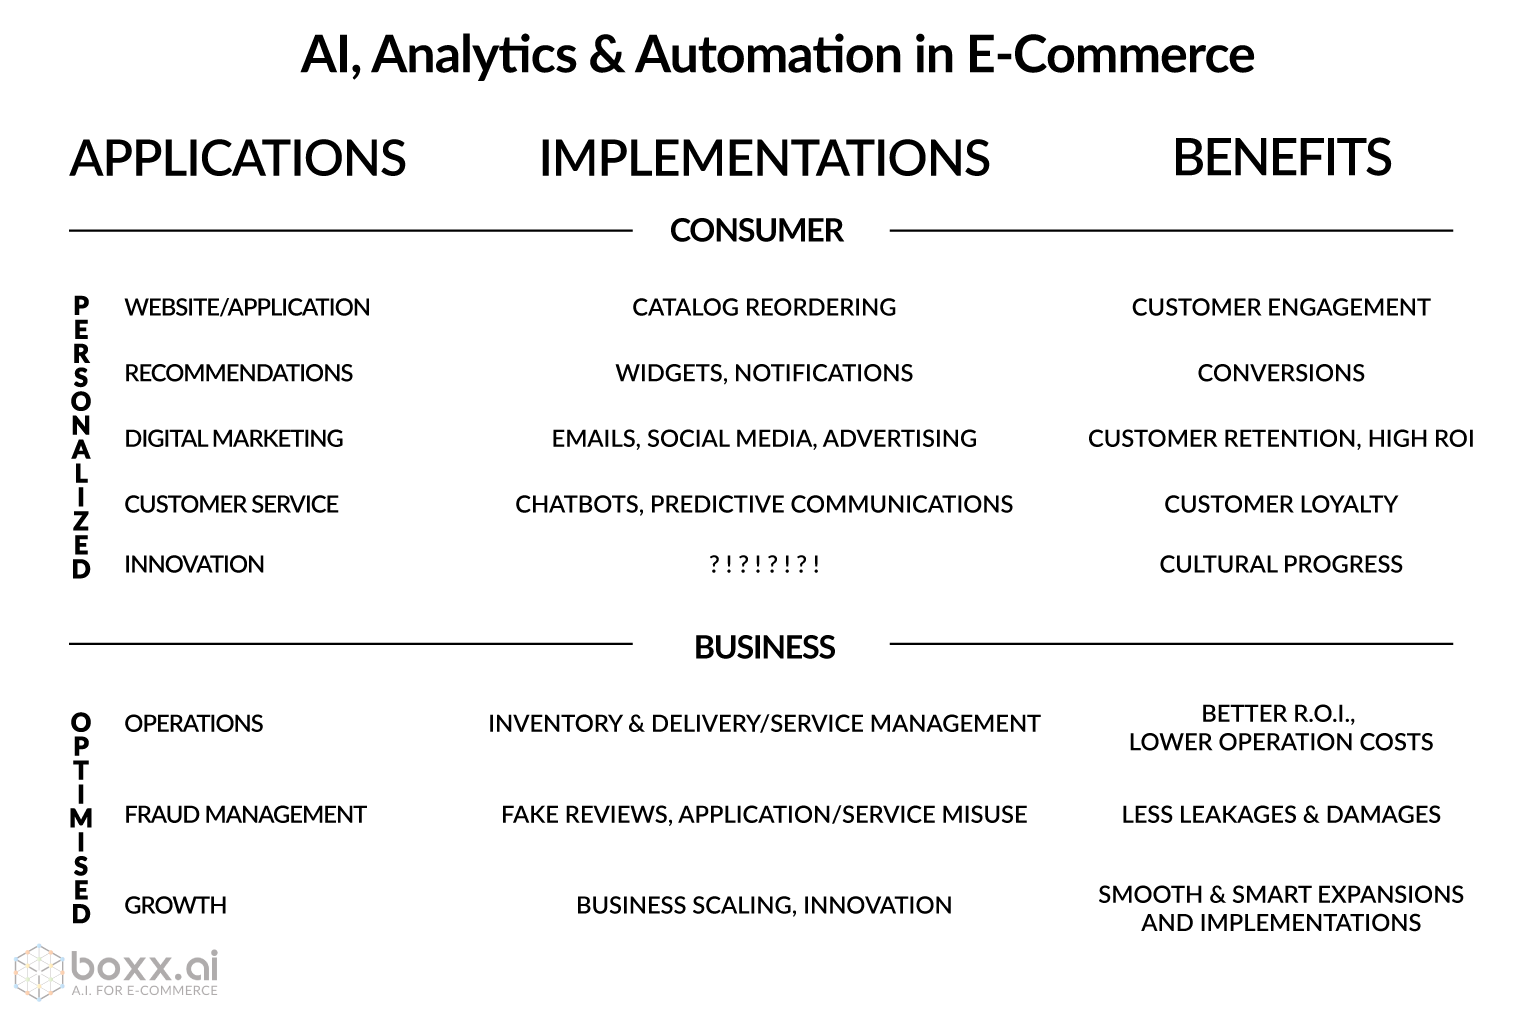 Applications, Implementations and Benefits of Ai, Analytics and Automation in E-Commerce